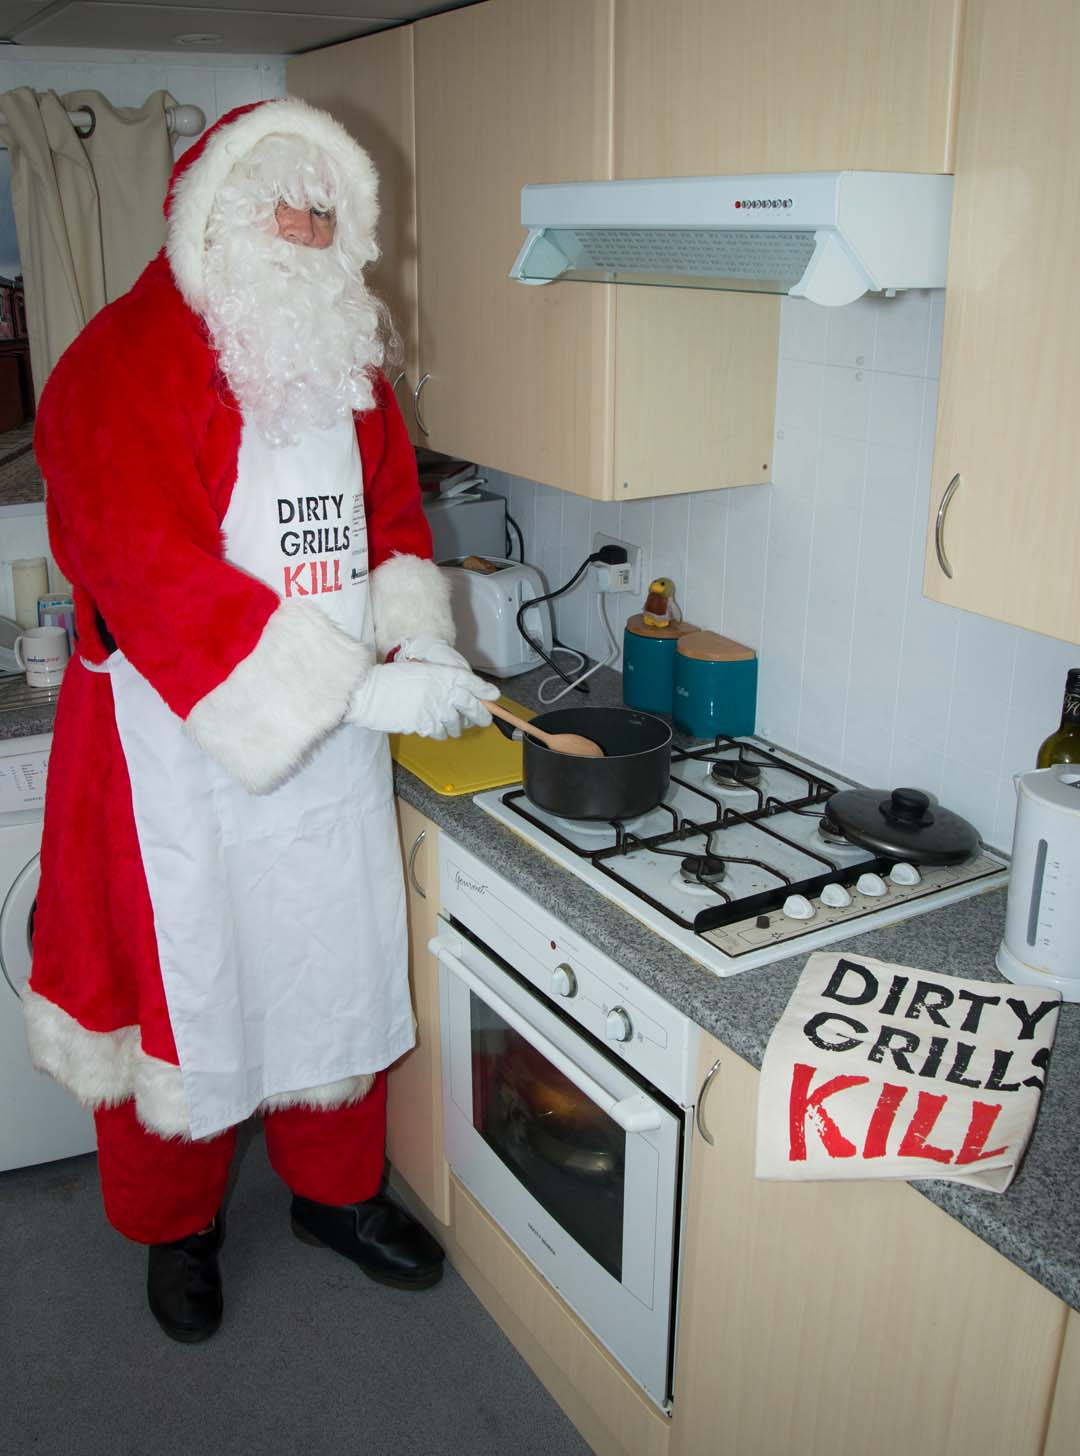 Give The Gift Of Life And Cook Safely This Christmas